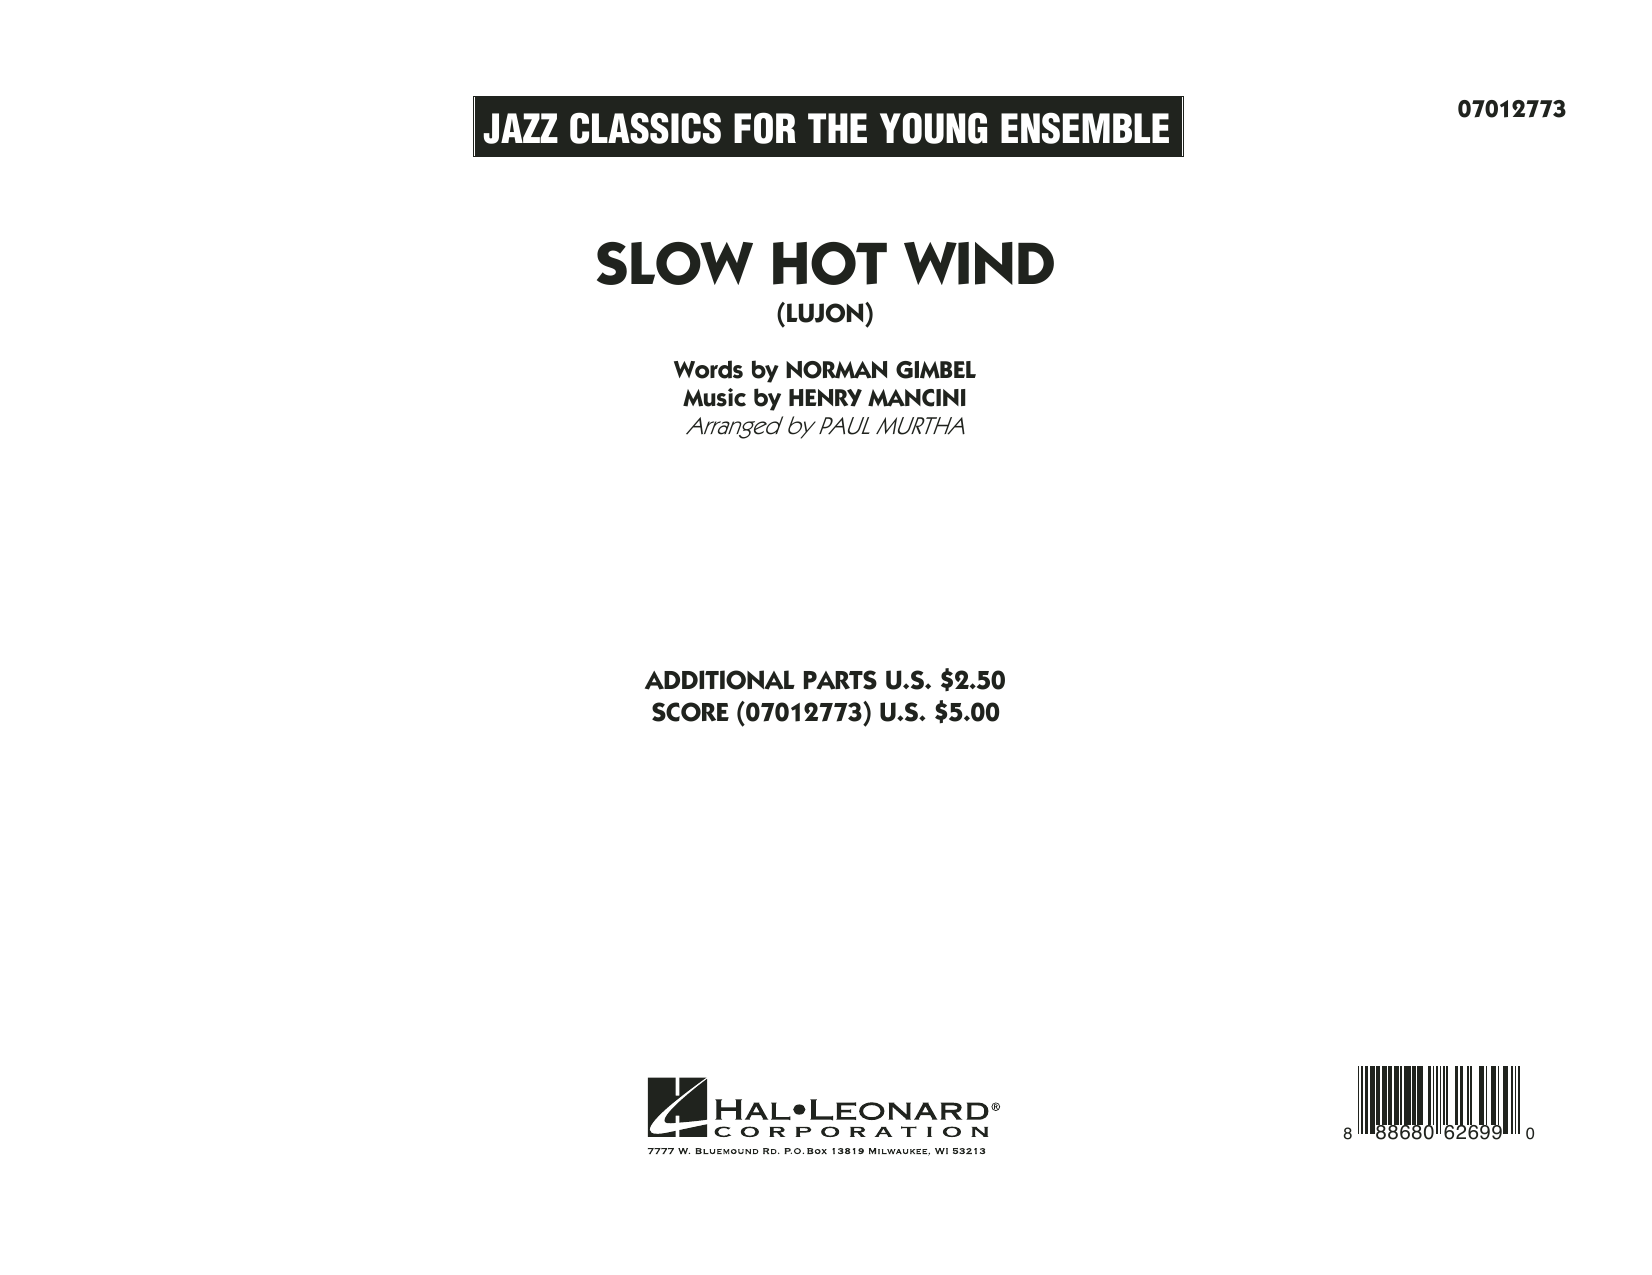 Slow Hot Wind (Lujon) (COMPLETE) sheet music for jazz band by Norman Gimbel, Henry Mancini and Paul Murtha. Score Image Preview.